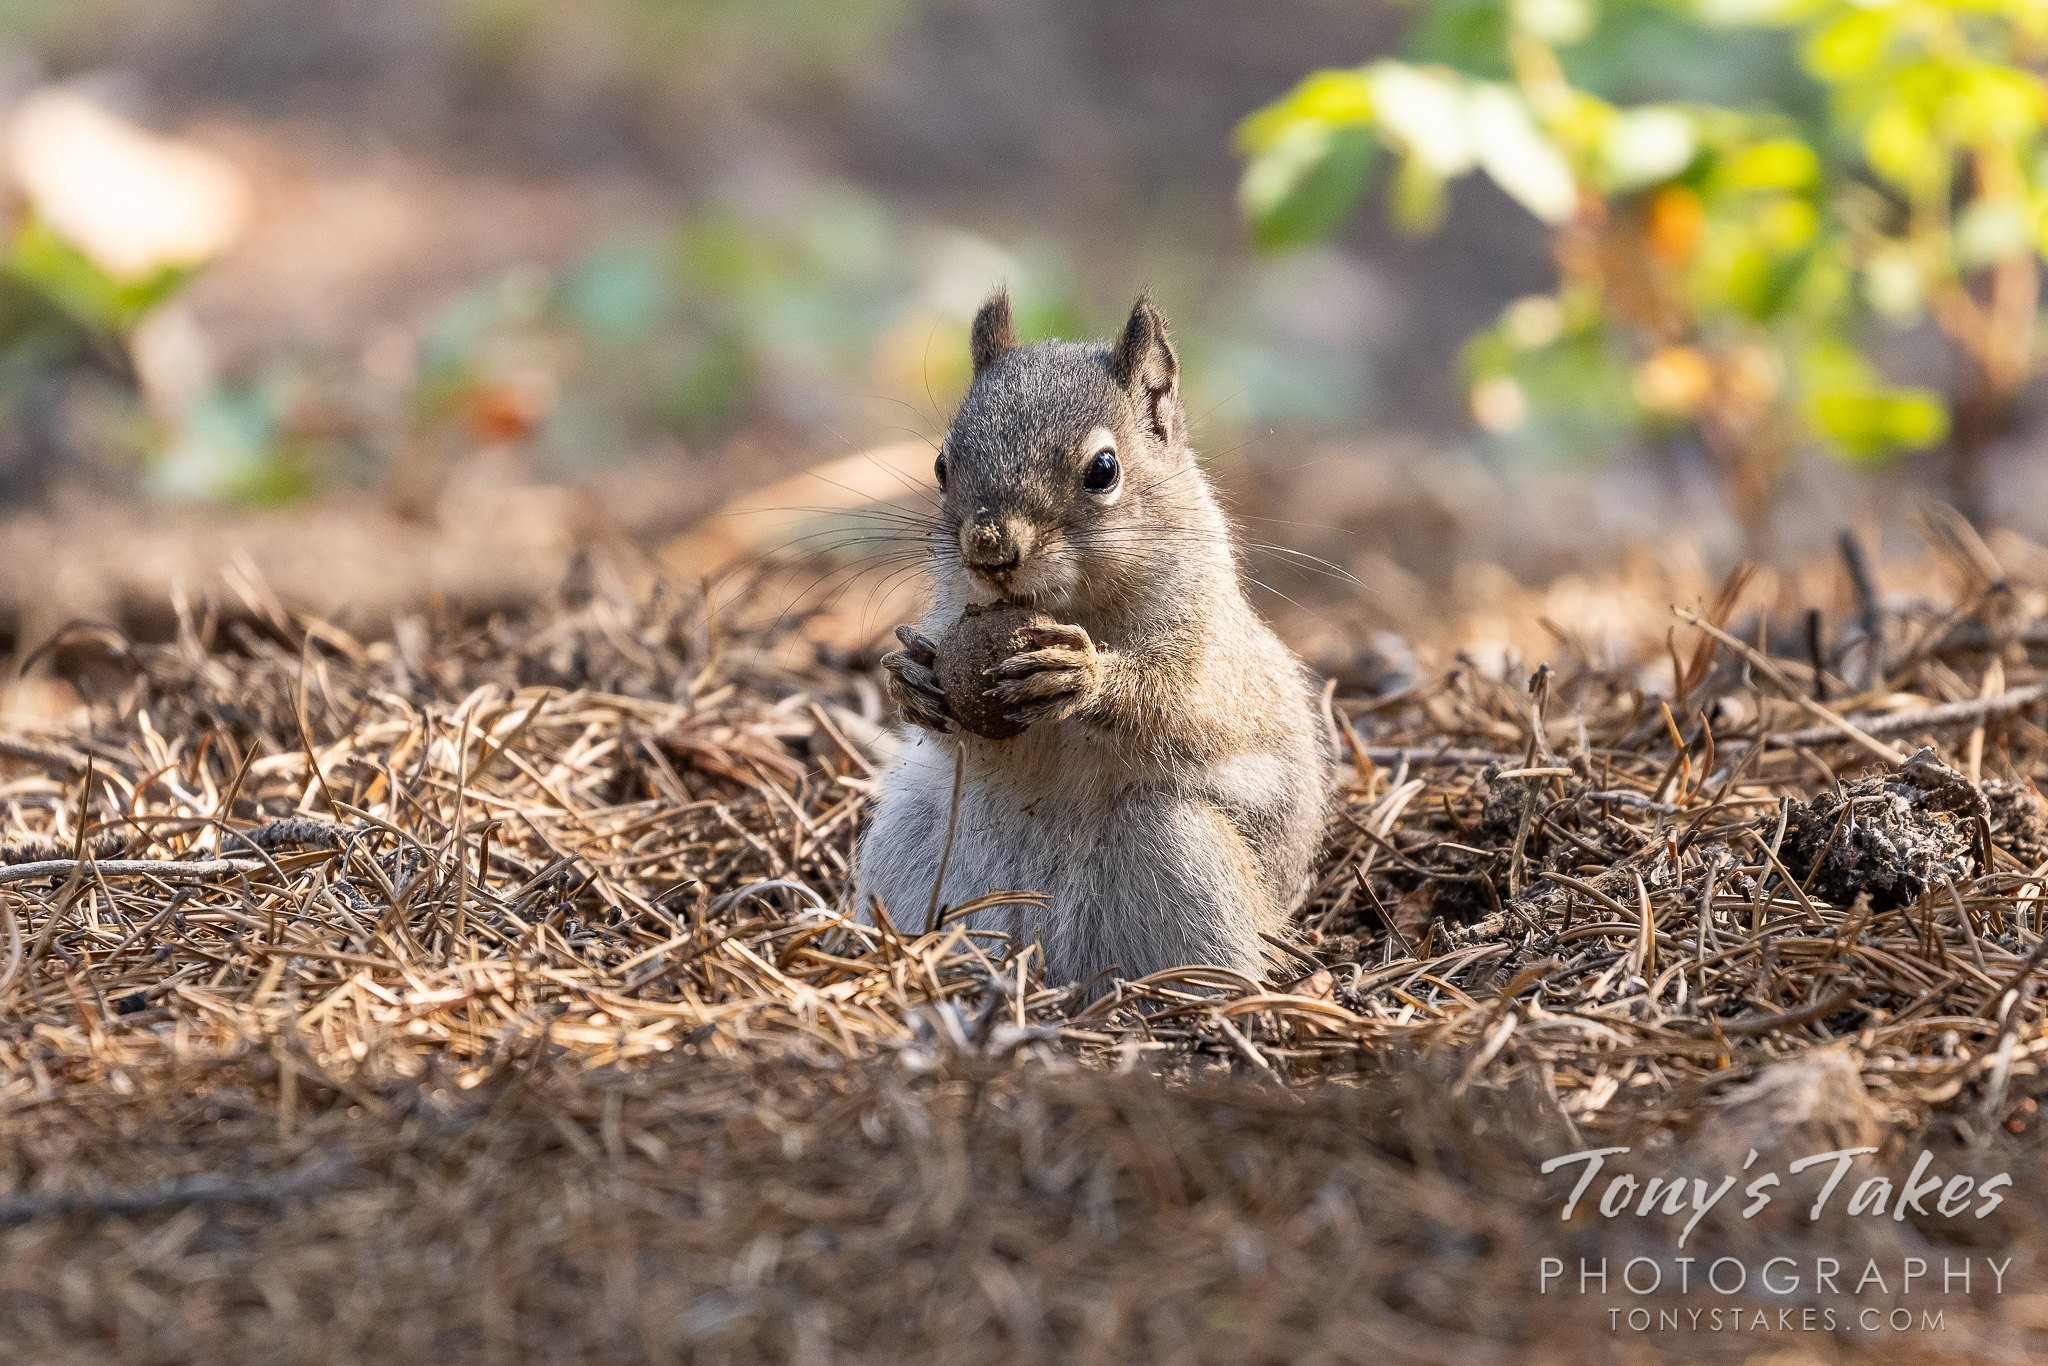 A squirrel hunts for a nut in the forest. (© Tony's Takes)